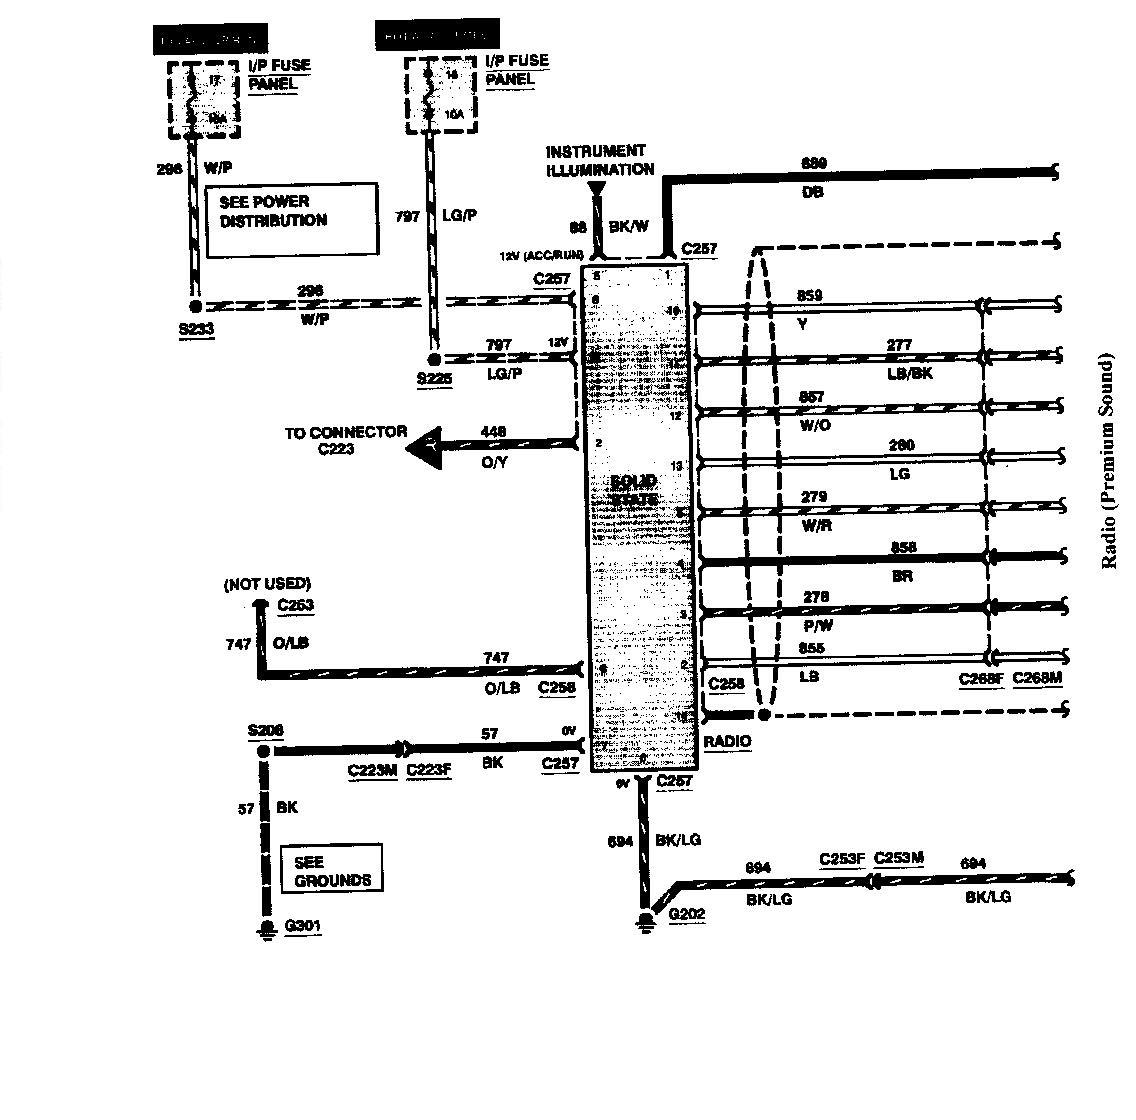 95Mark8 Premium Sound Wiring lincoln ls stereo wiring diagram ls engine relay box diagram Industrial Wiring Diagrams at gsmx.co